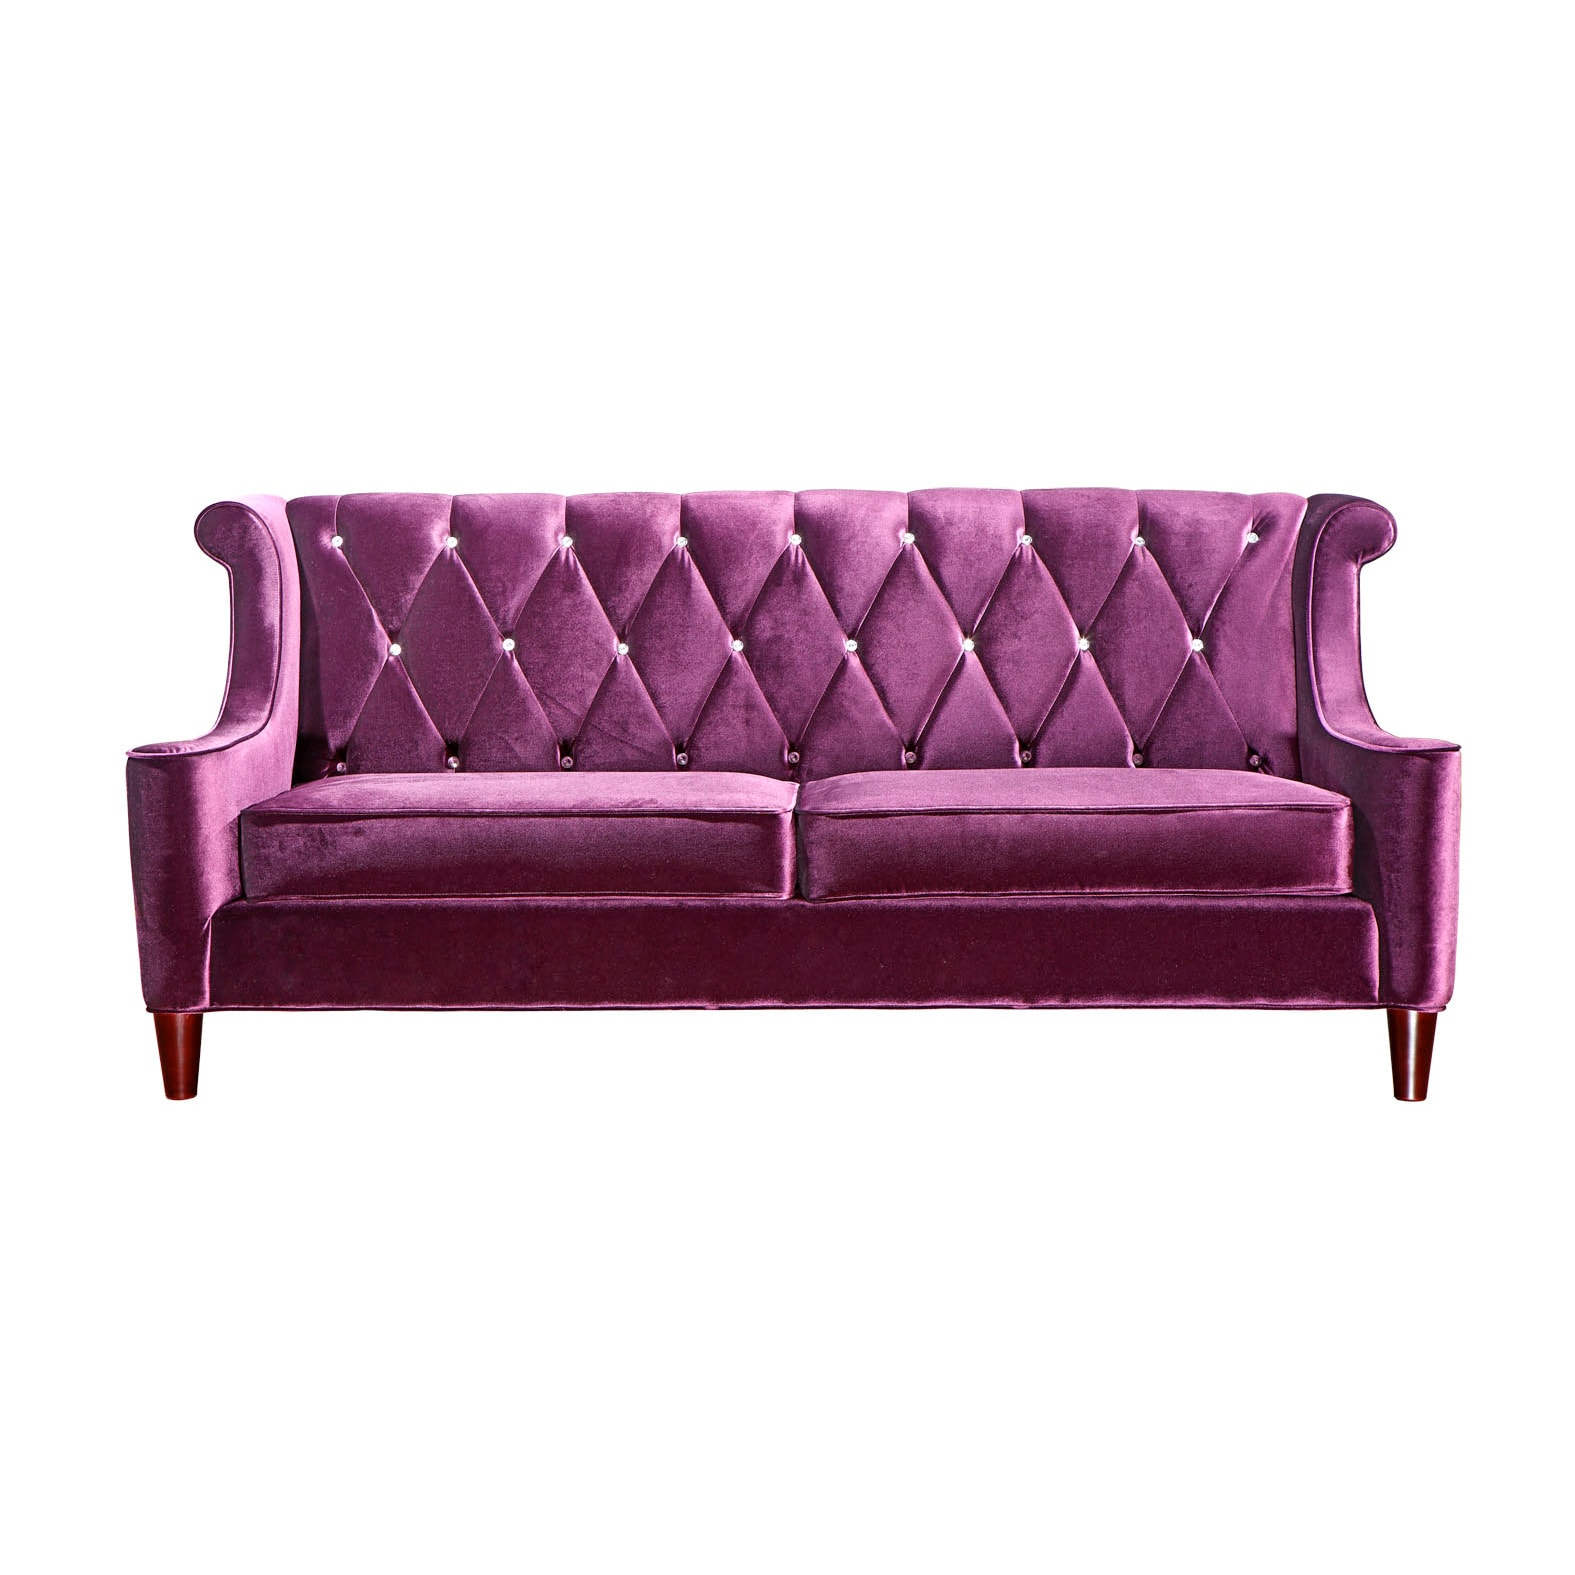 Shop armen living barrister modern purple velvet sofa with crystal buttons free shipping today overstock com 7211443